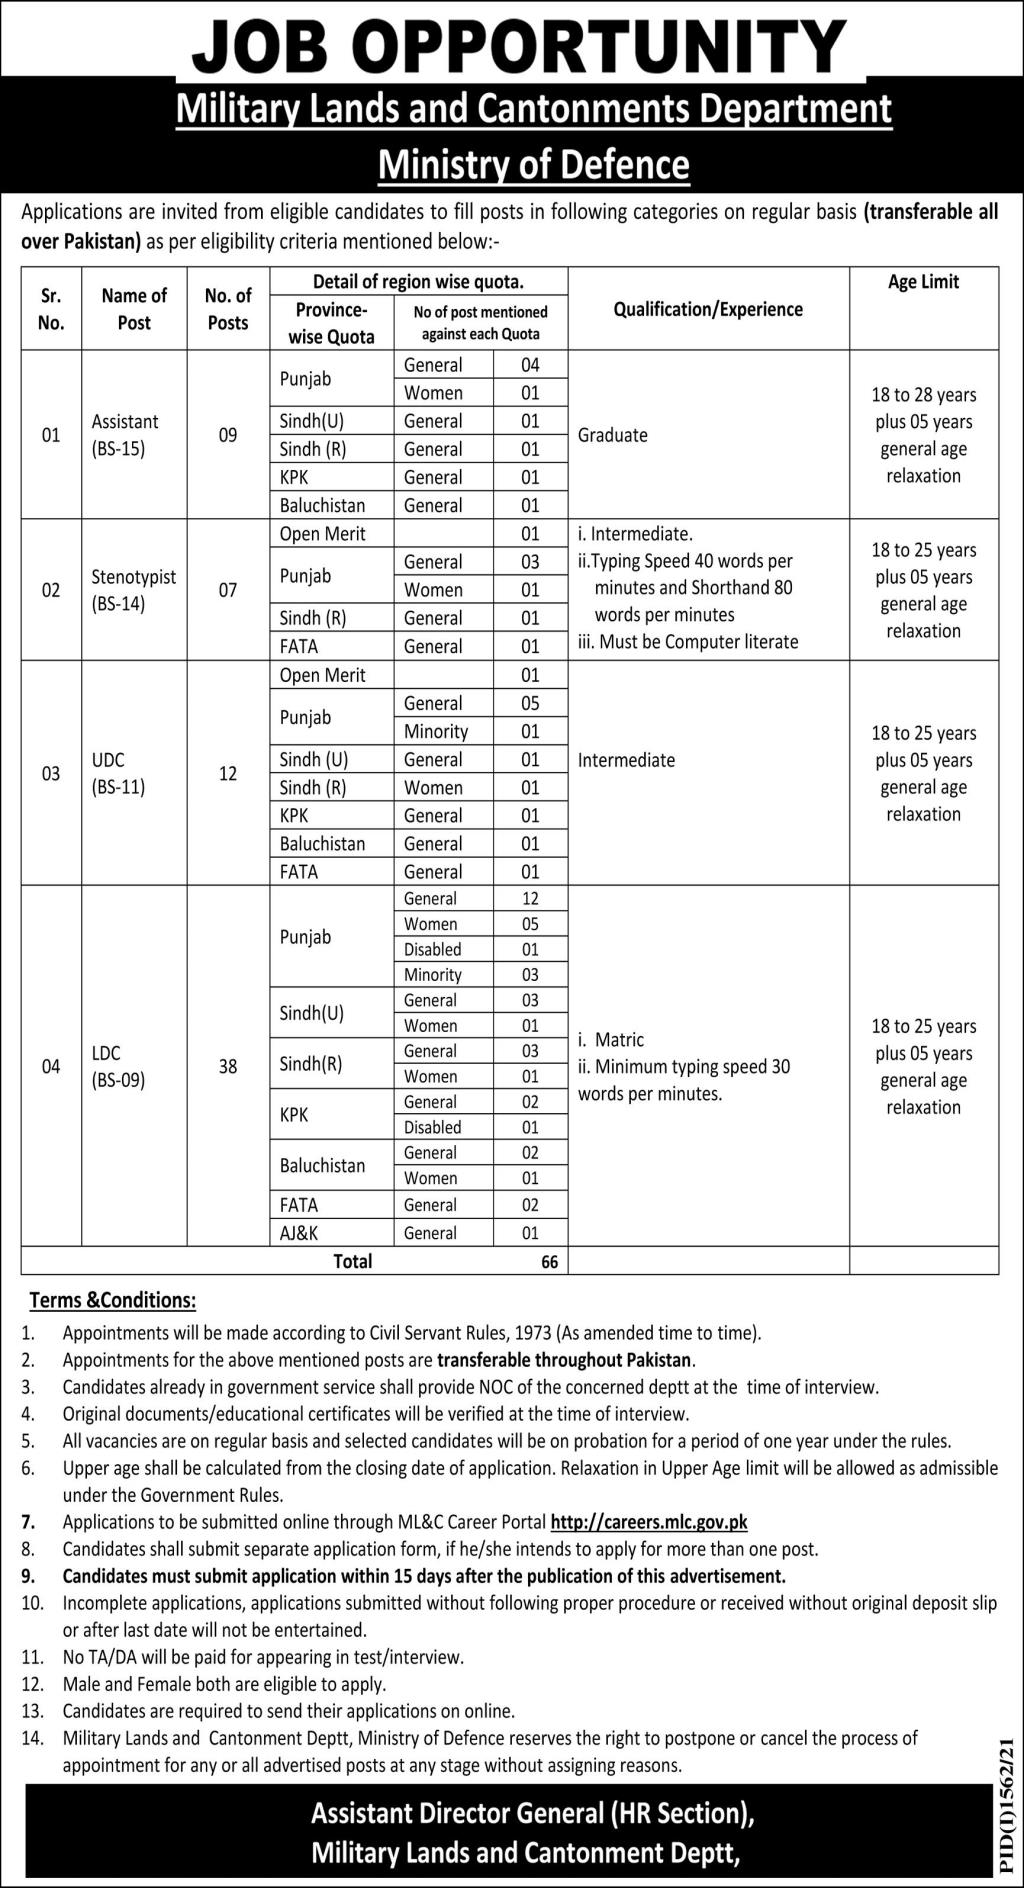 Military Lands And Cantoments Department Ministry Of Defense Jobs 2021